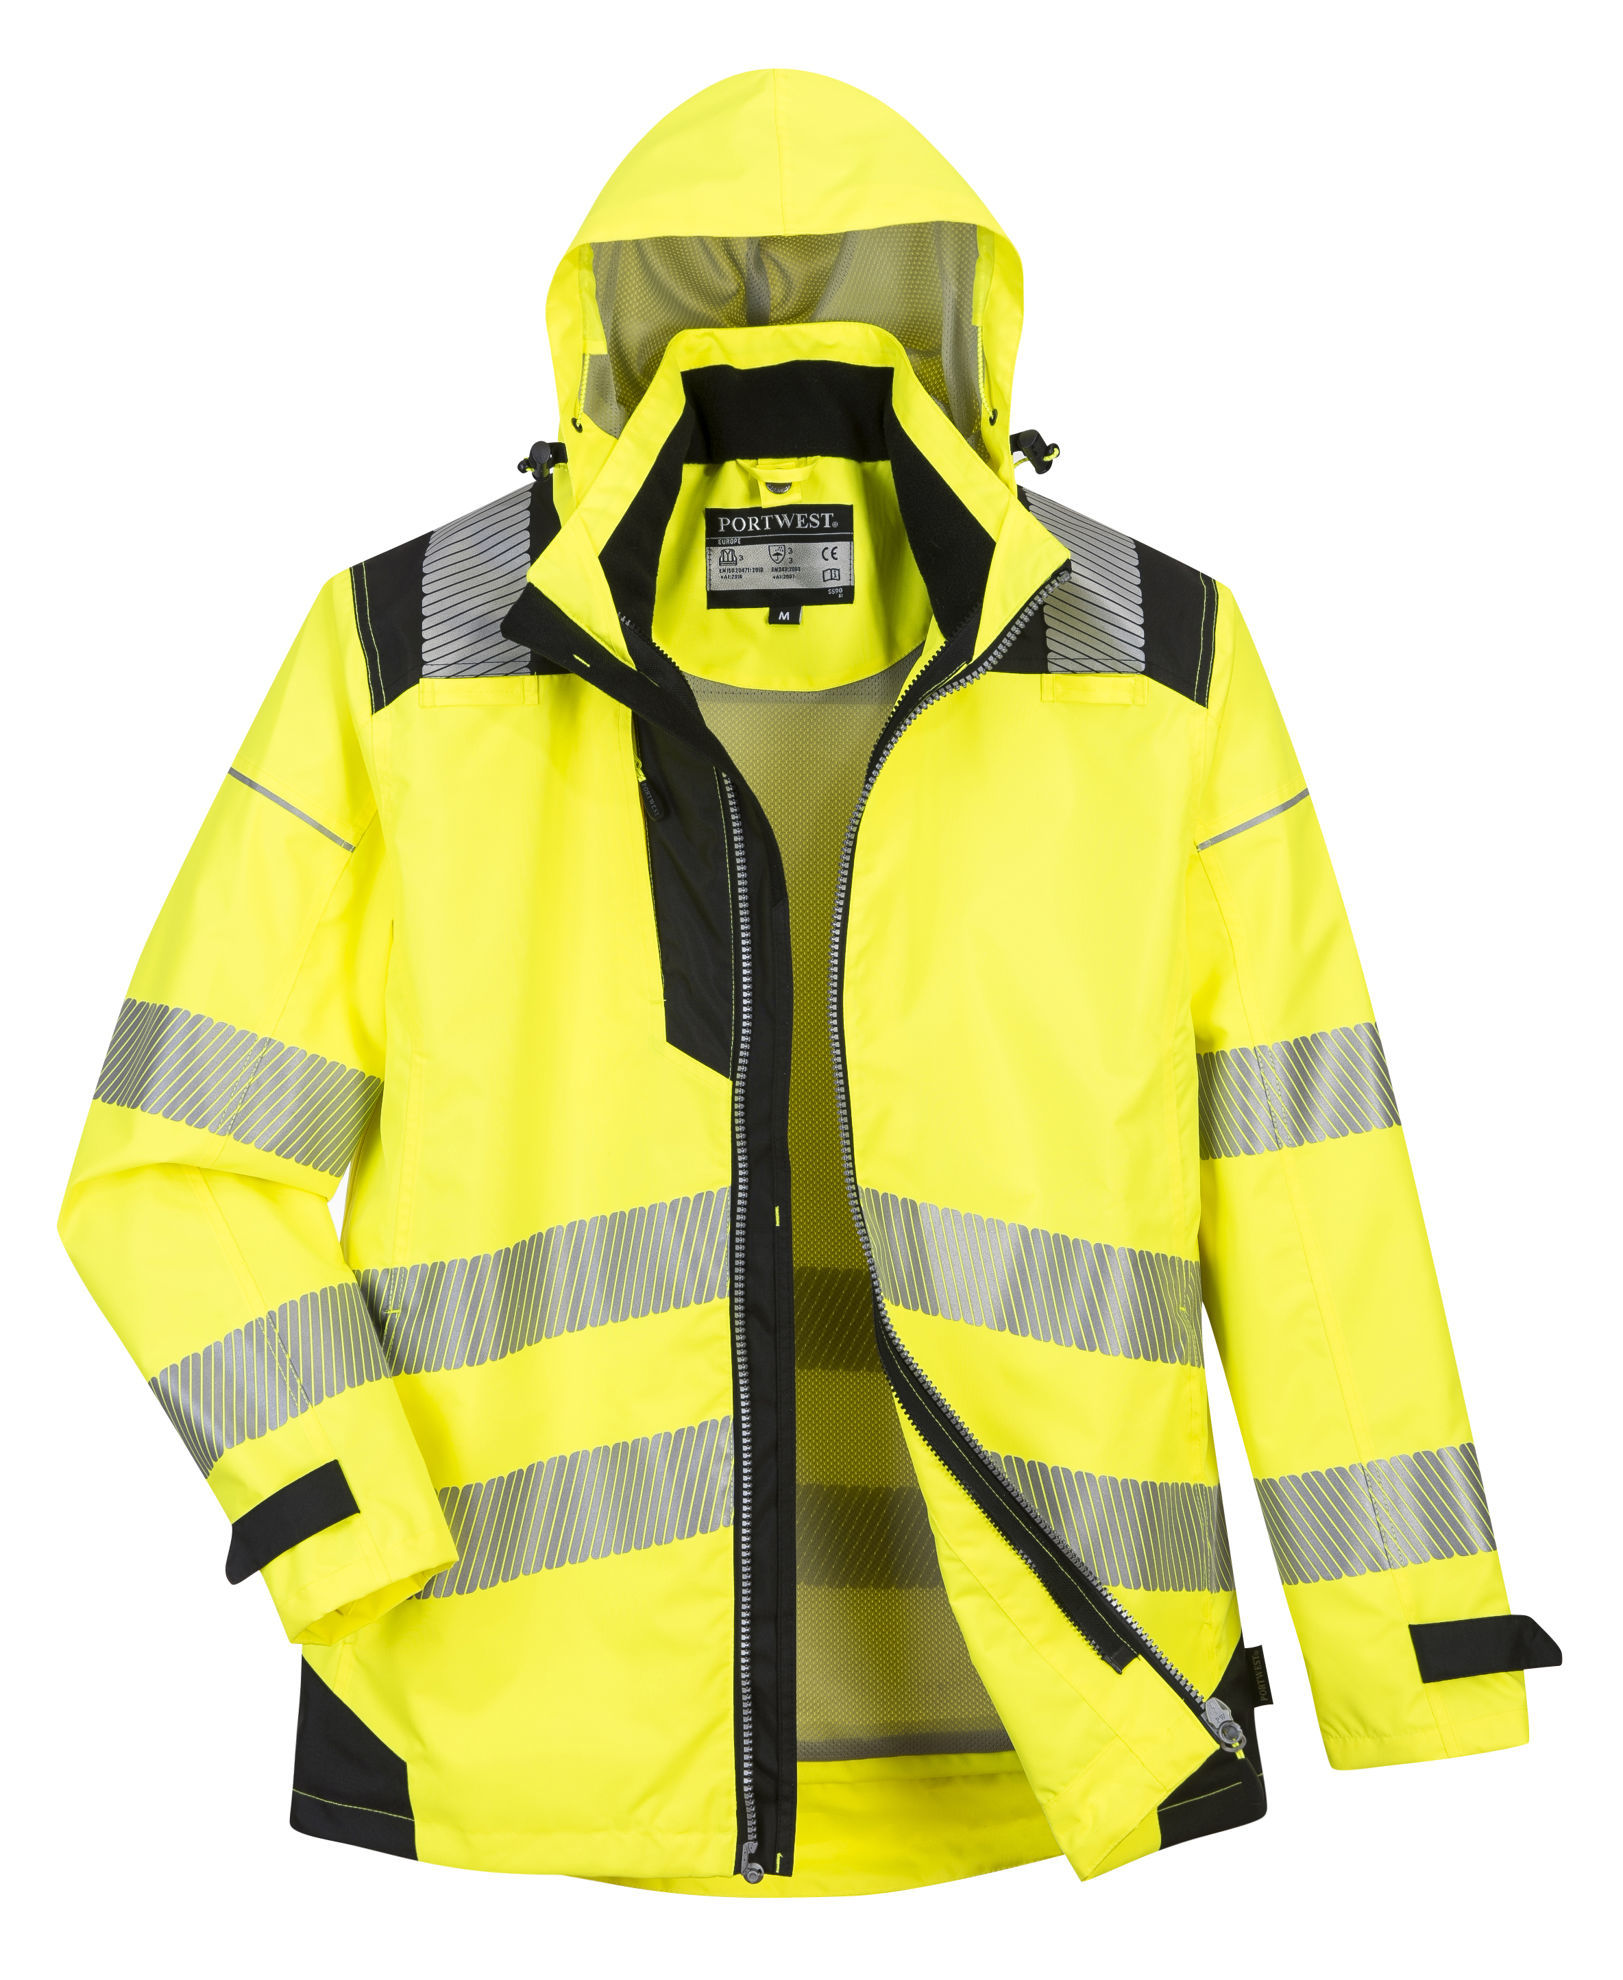 Picture of Portwest Hi Visibility PW3  3-in-1 Jacket